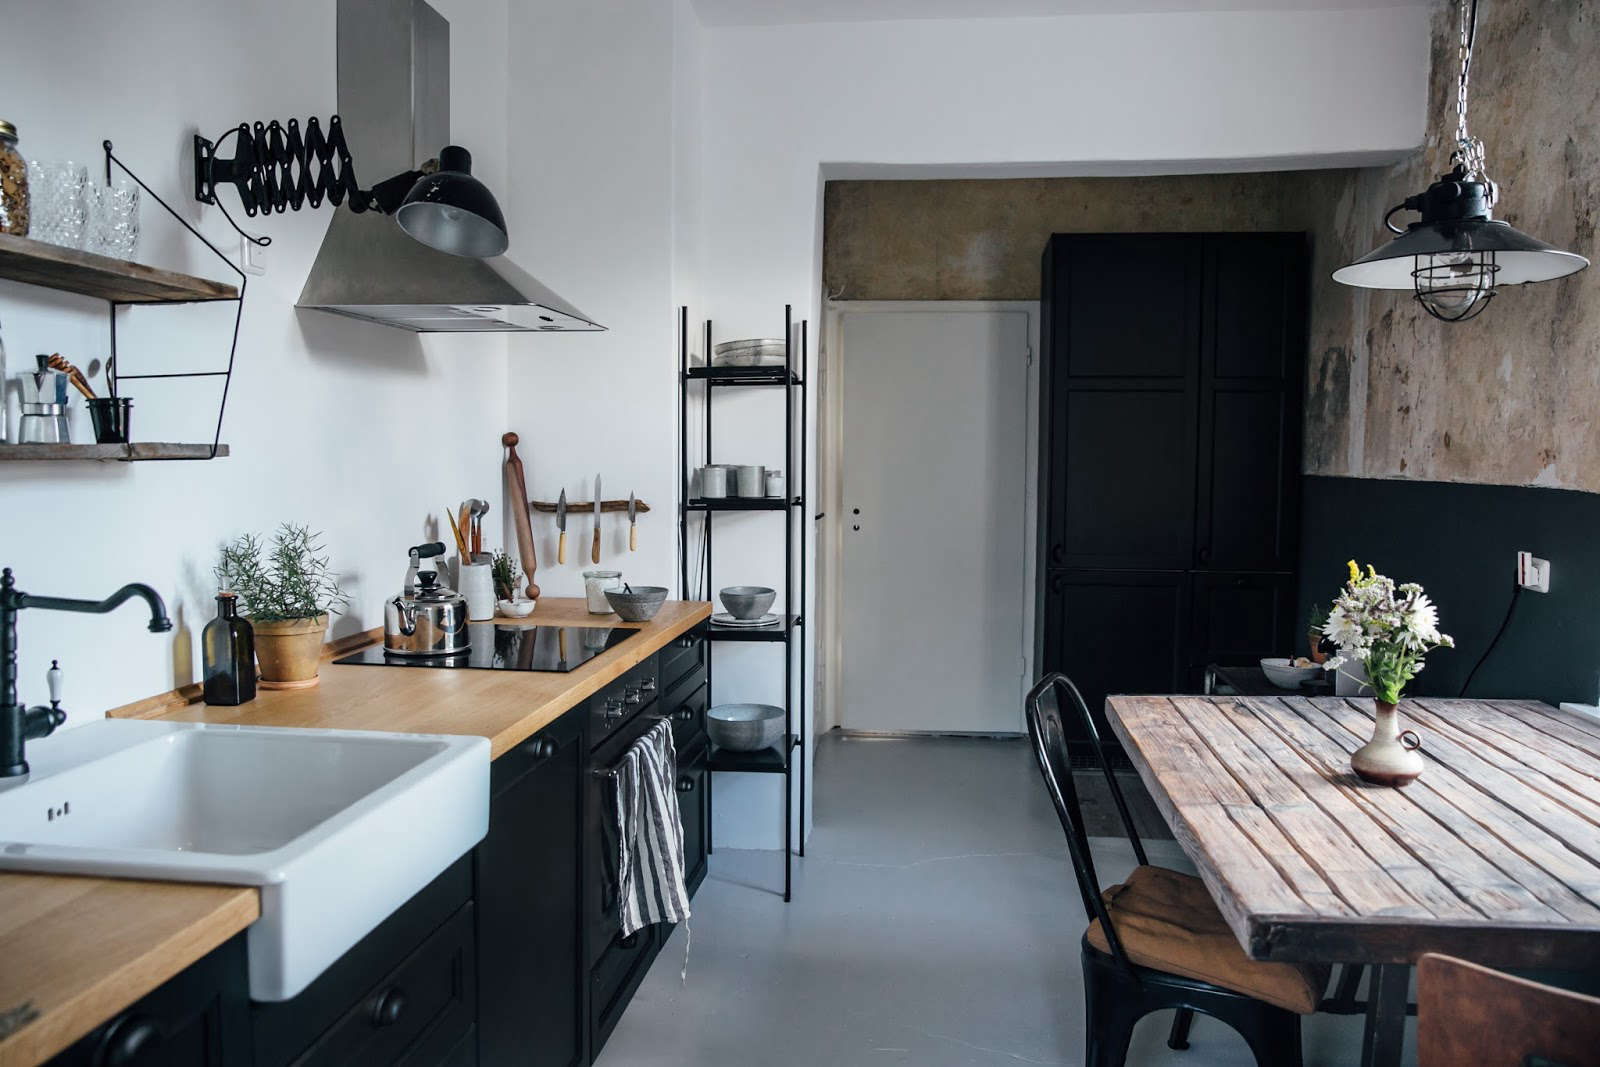 Kitchen of the Week: A DIY Ikea Country Kitchen for Two